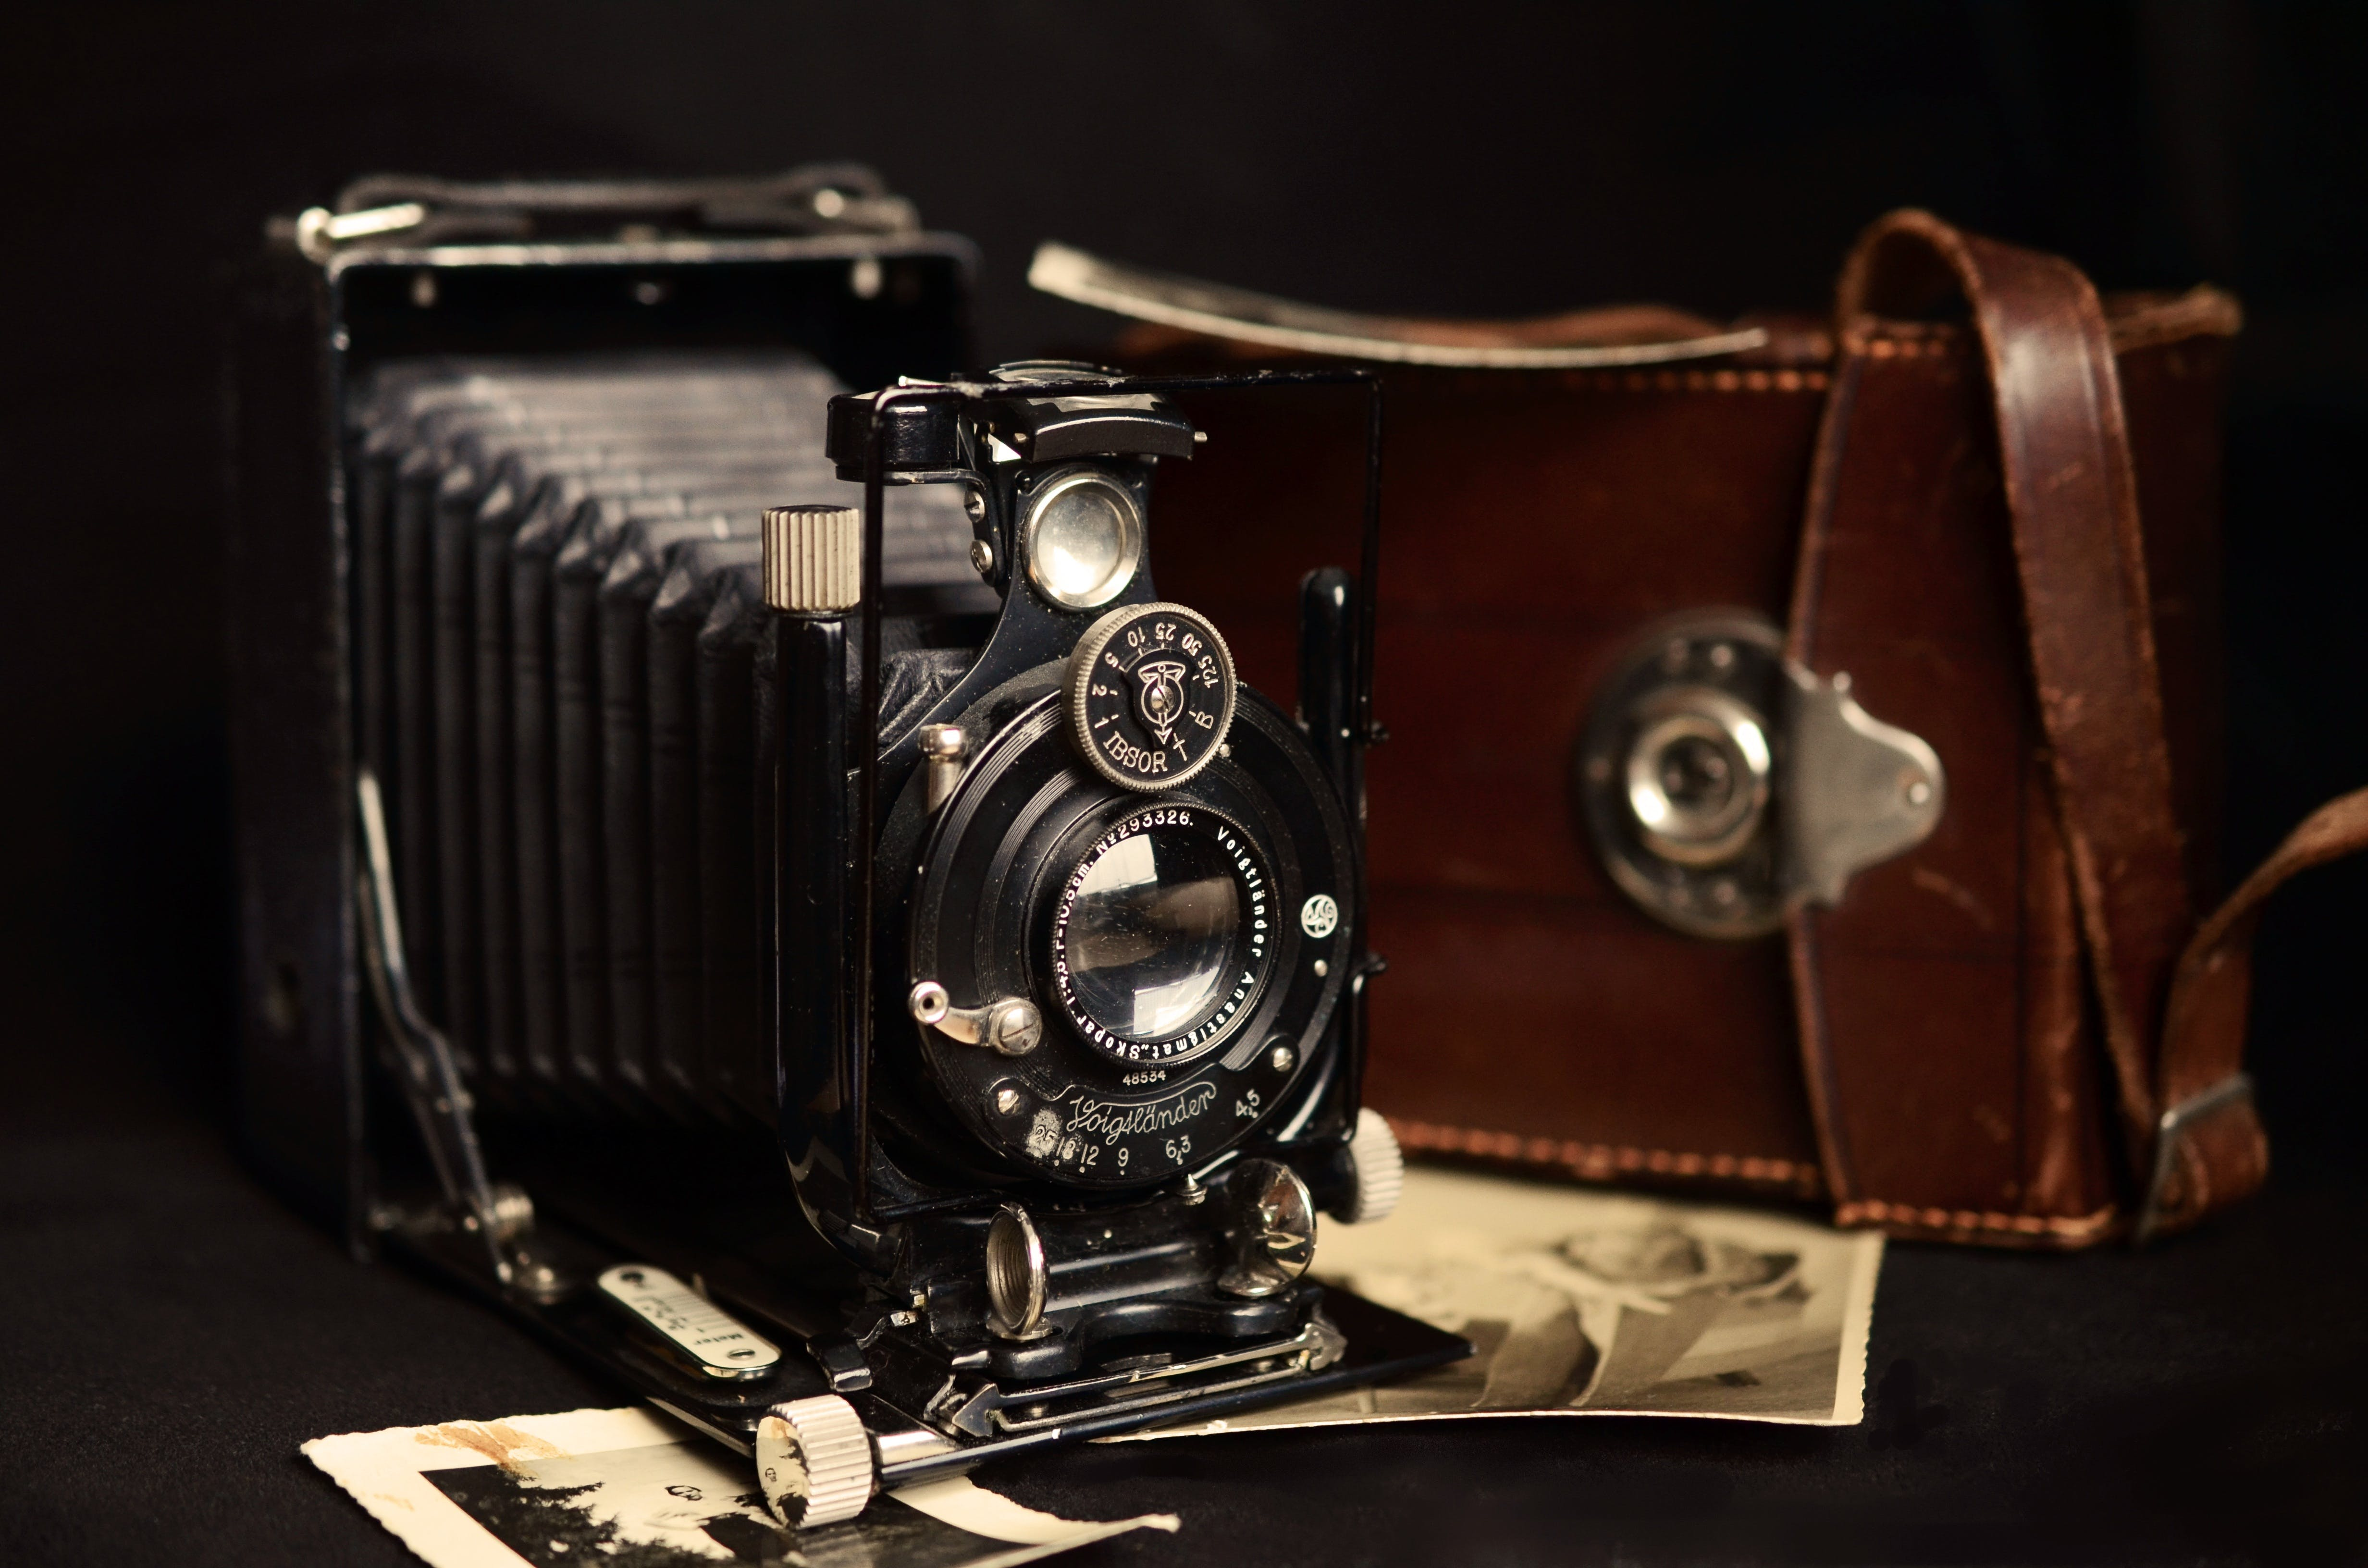 Black Classic Camera Near Brown Leather Bag